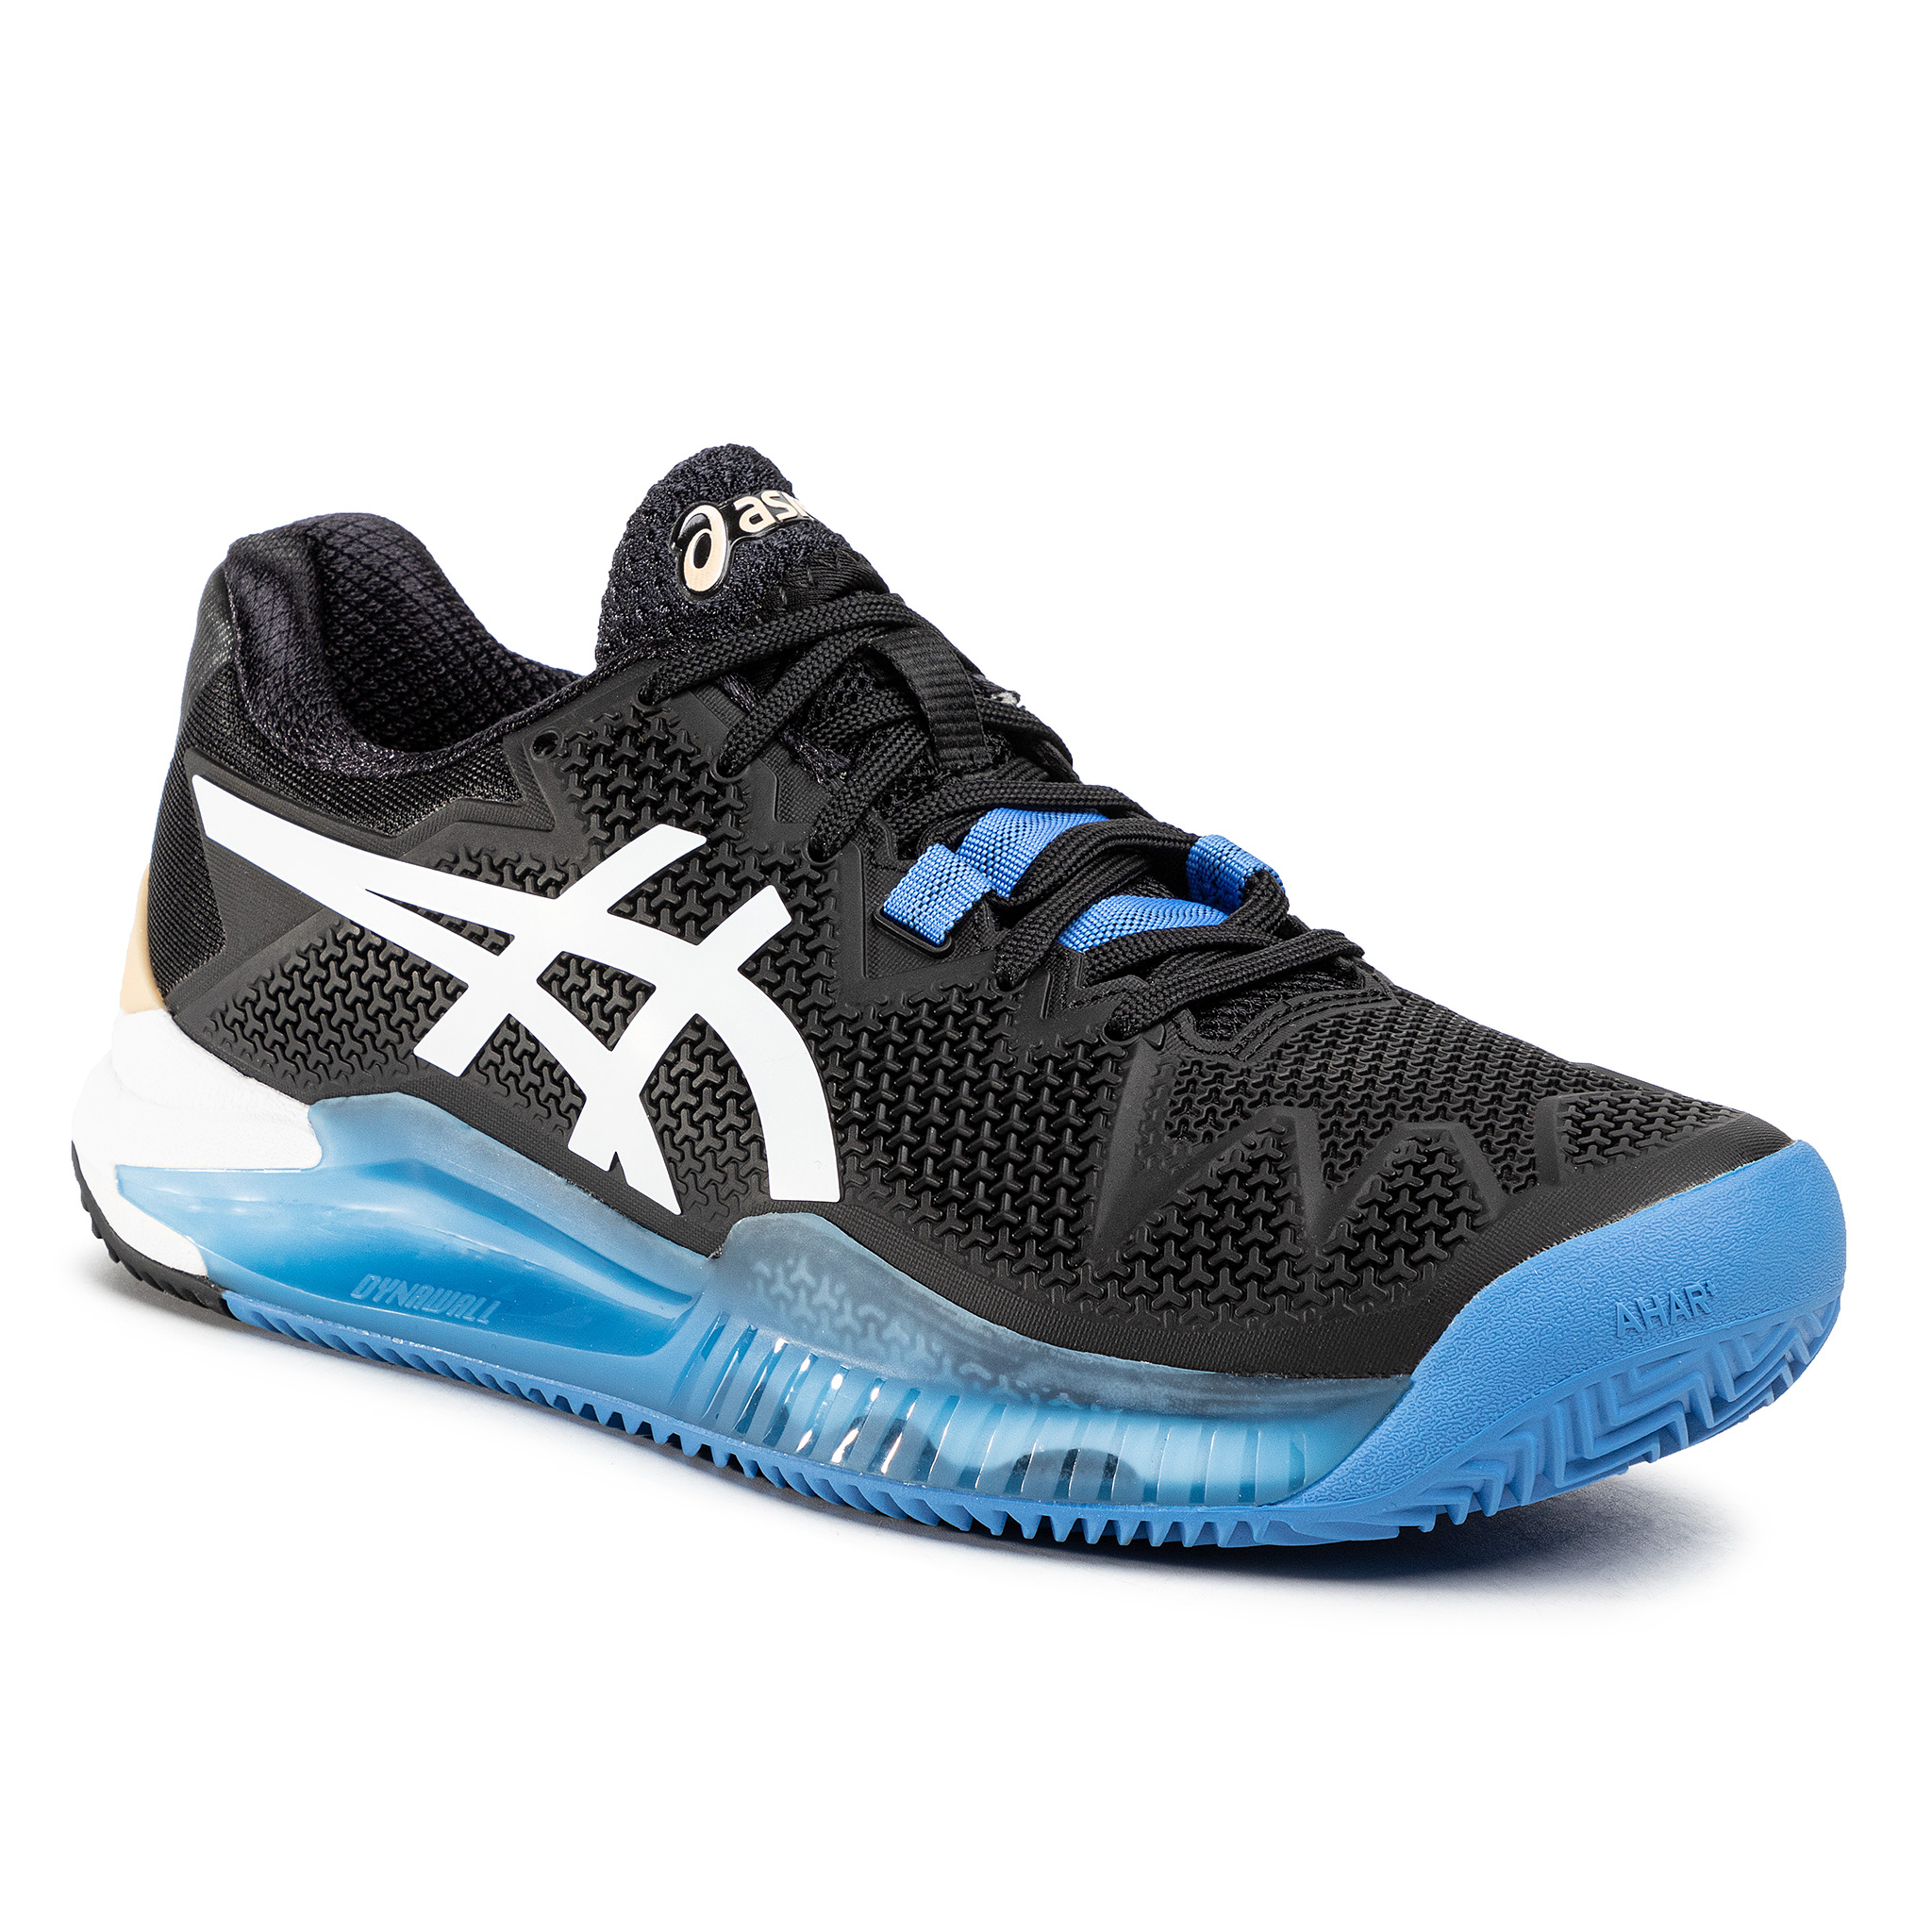 Pantofi Asics - Gel-Resolution 8 Clay 1041a076 Black/White 001 imagine epantofi.ro 2021